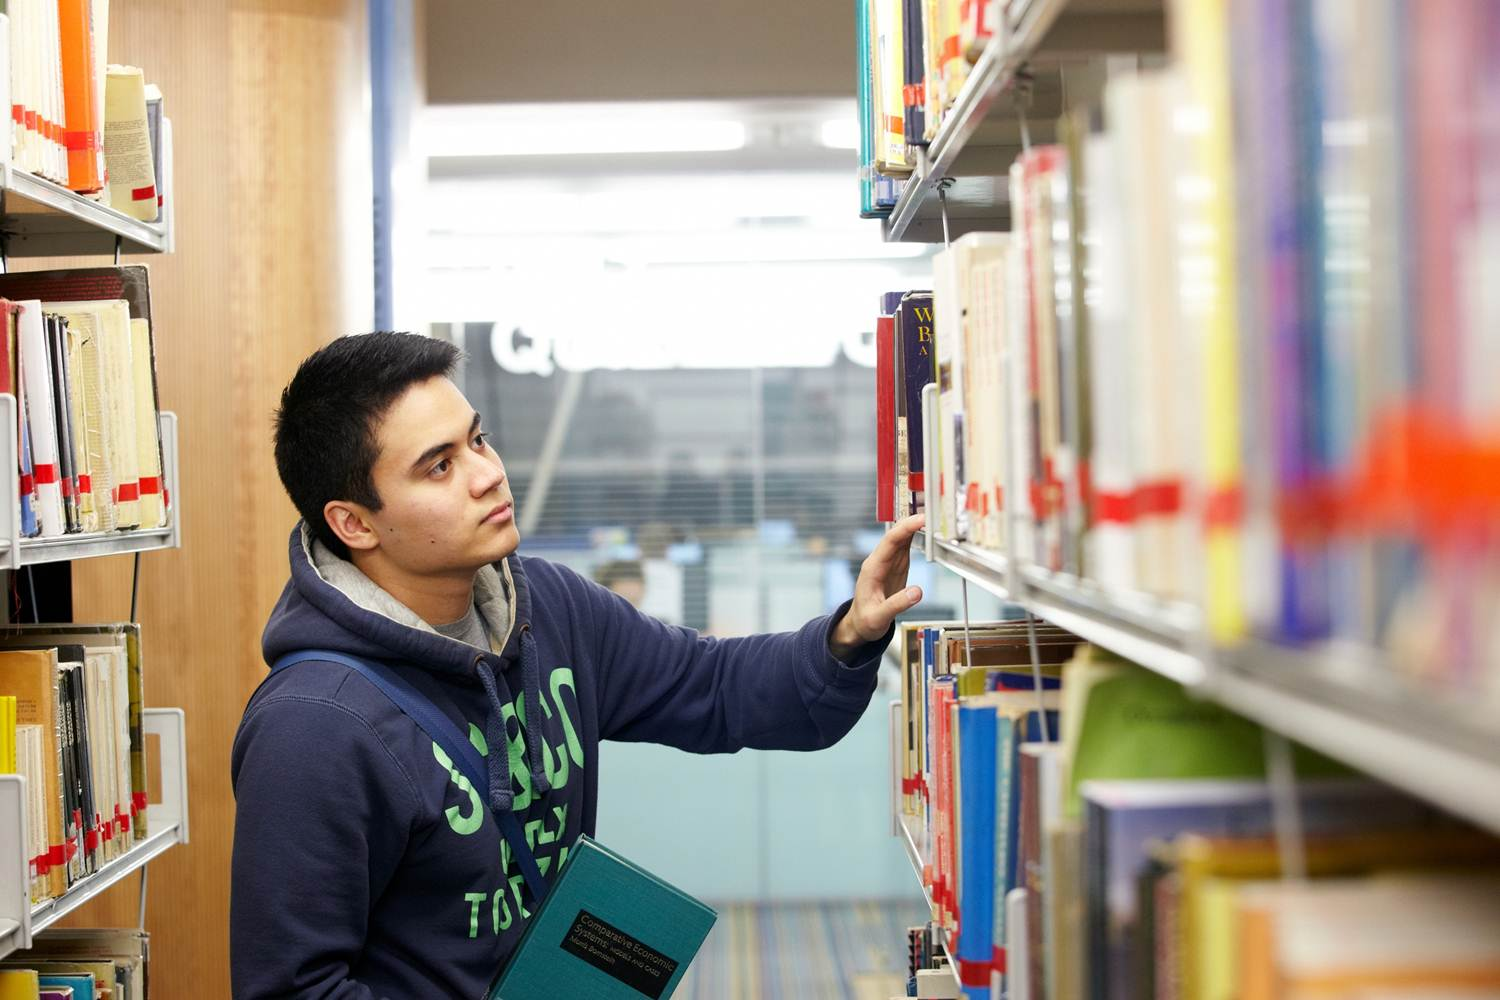 This is an image of a person looking on the library shelves for books.